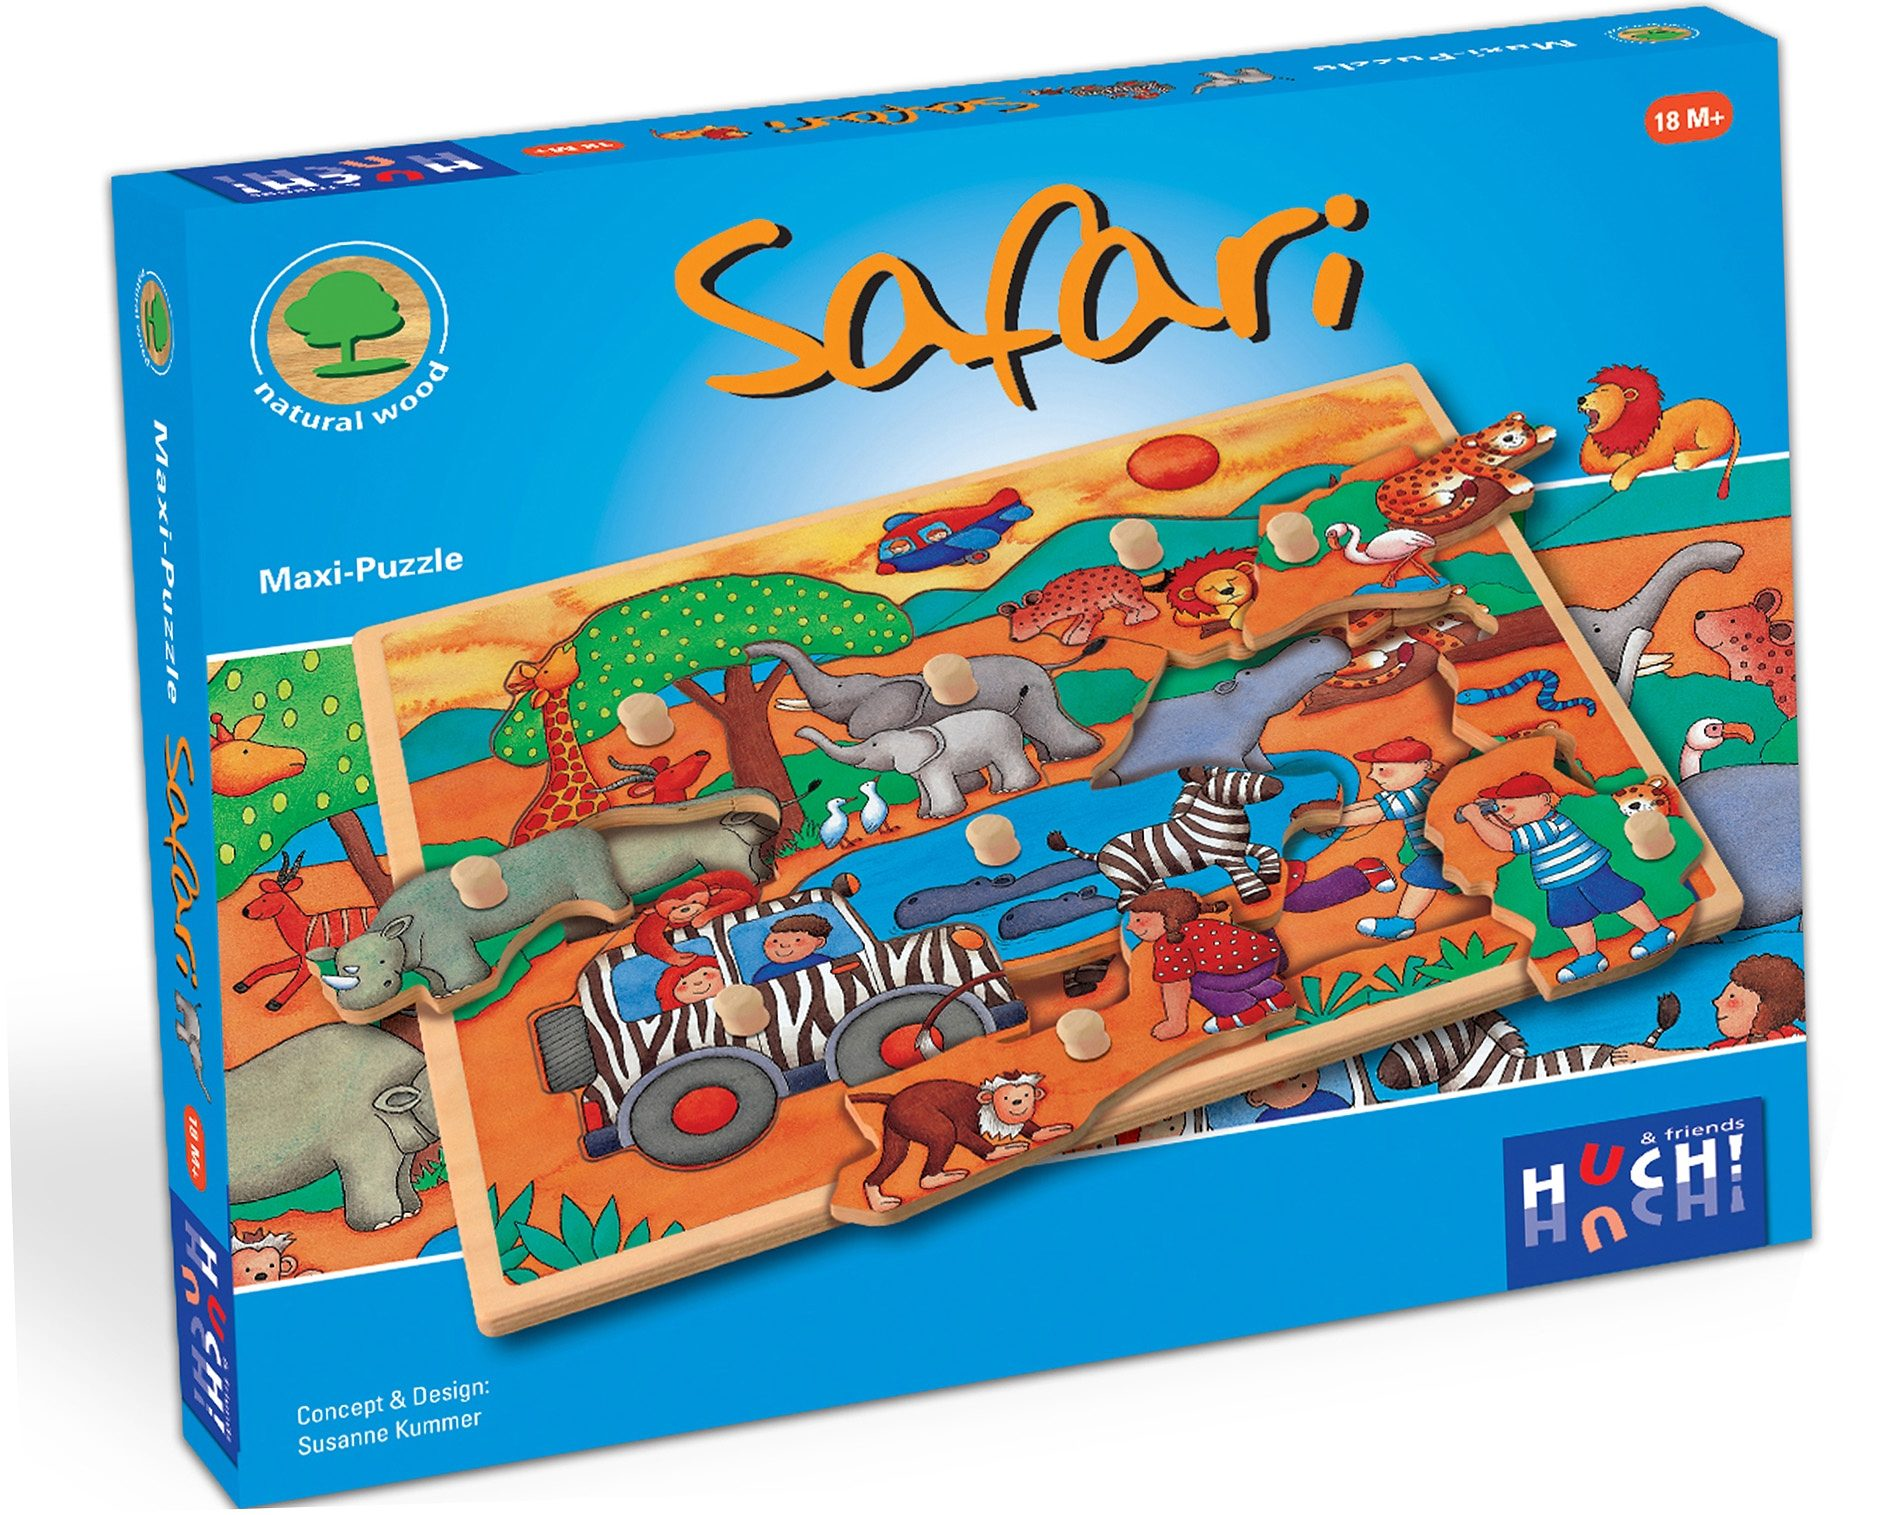 Huch! & friends Puzzle, 9 Maxi-Teile, »Wooden Line Safari«